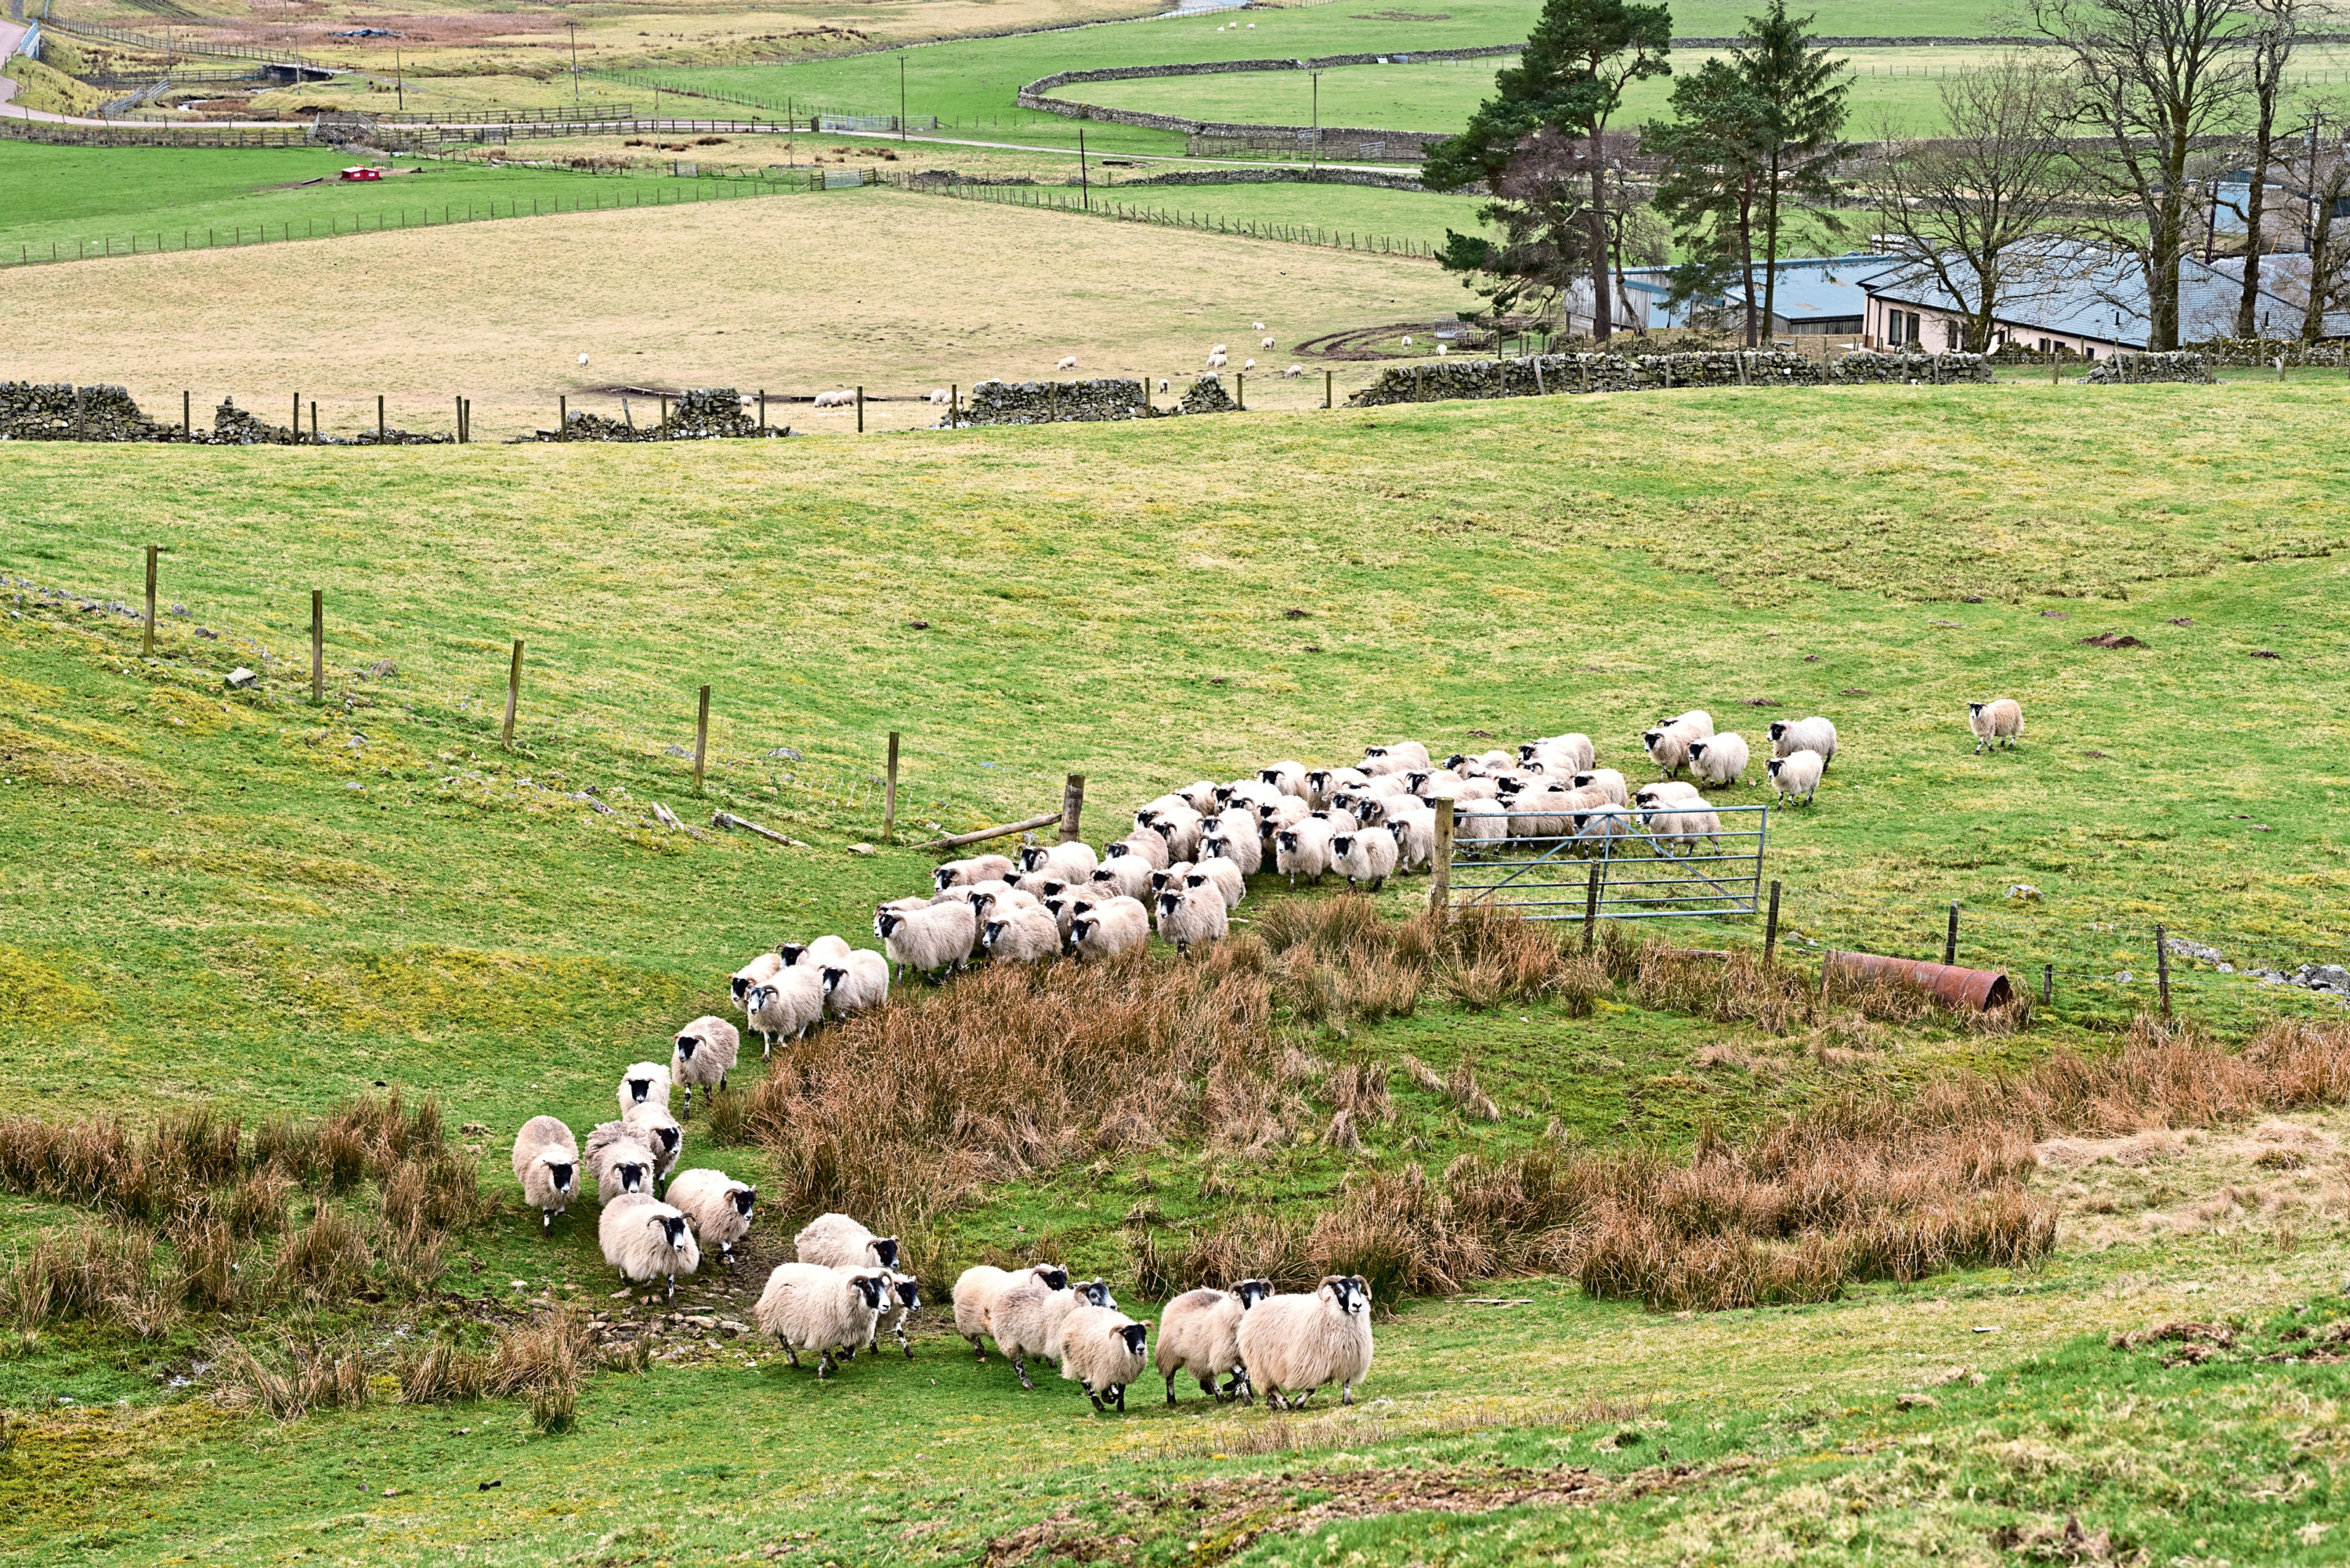 The sheep were said to have been targeted in Turriff